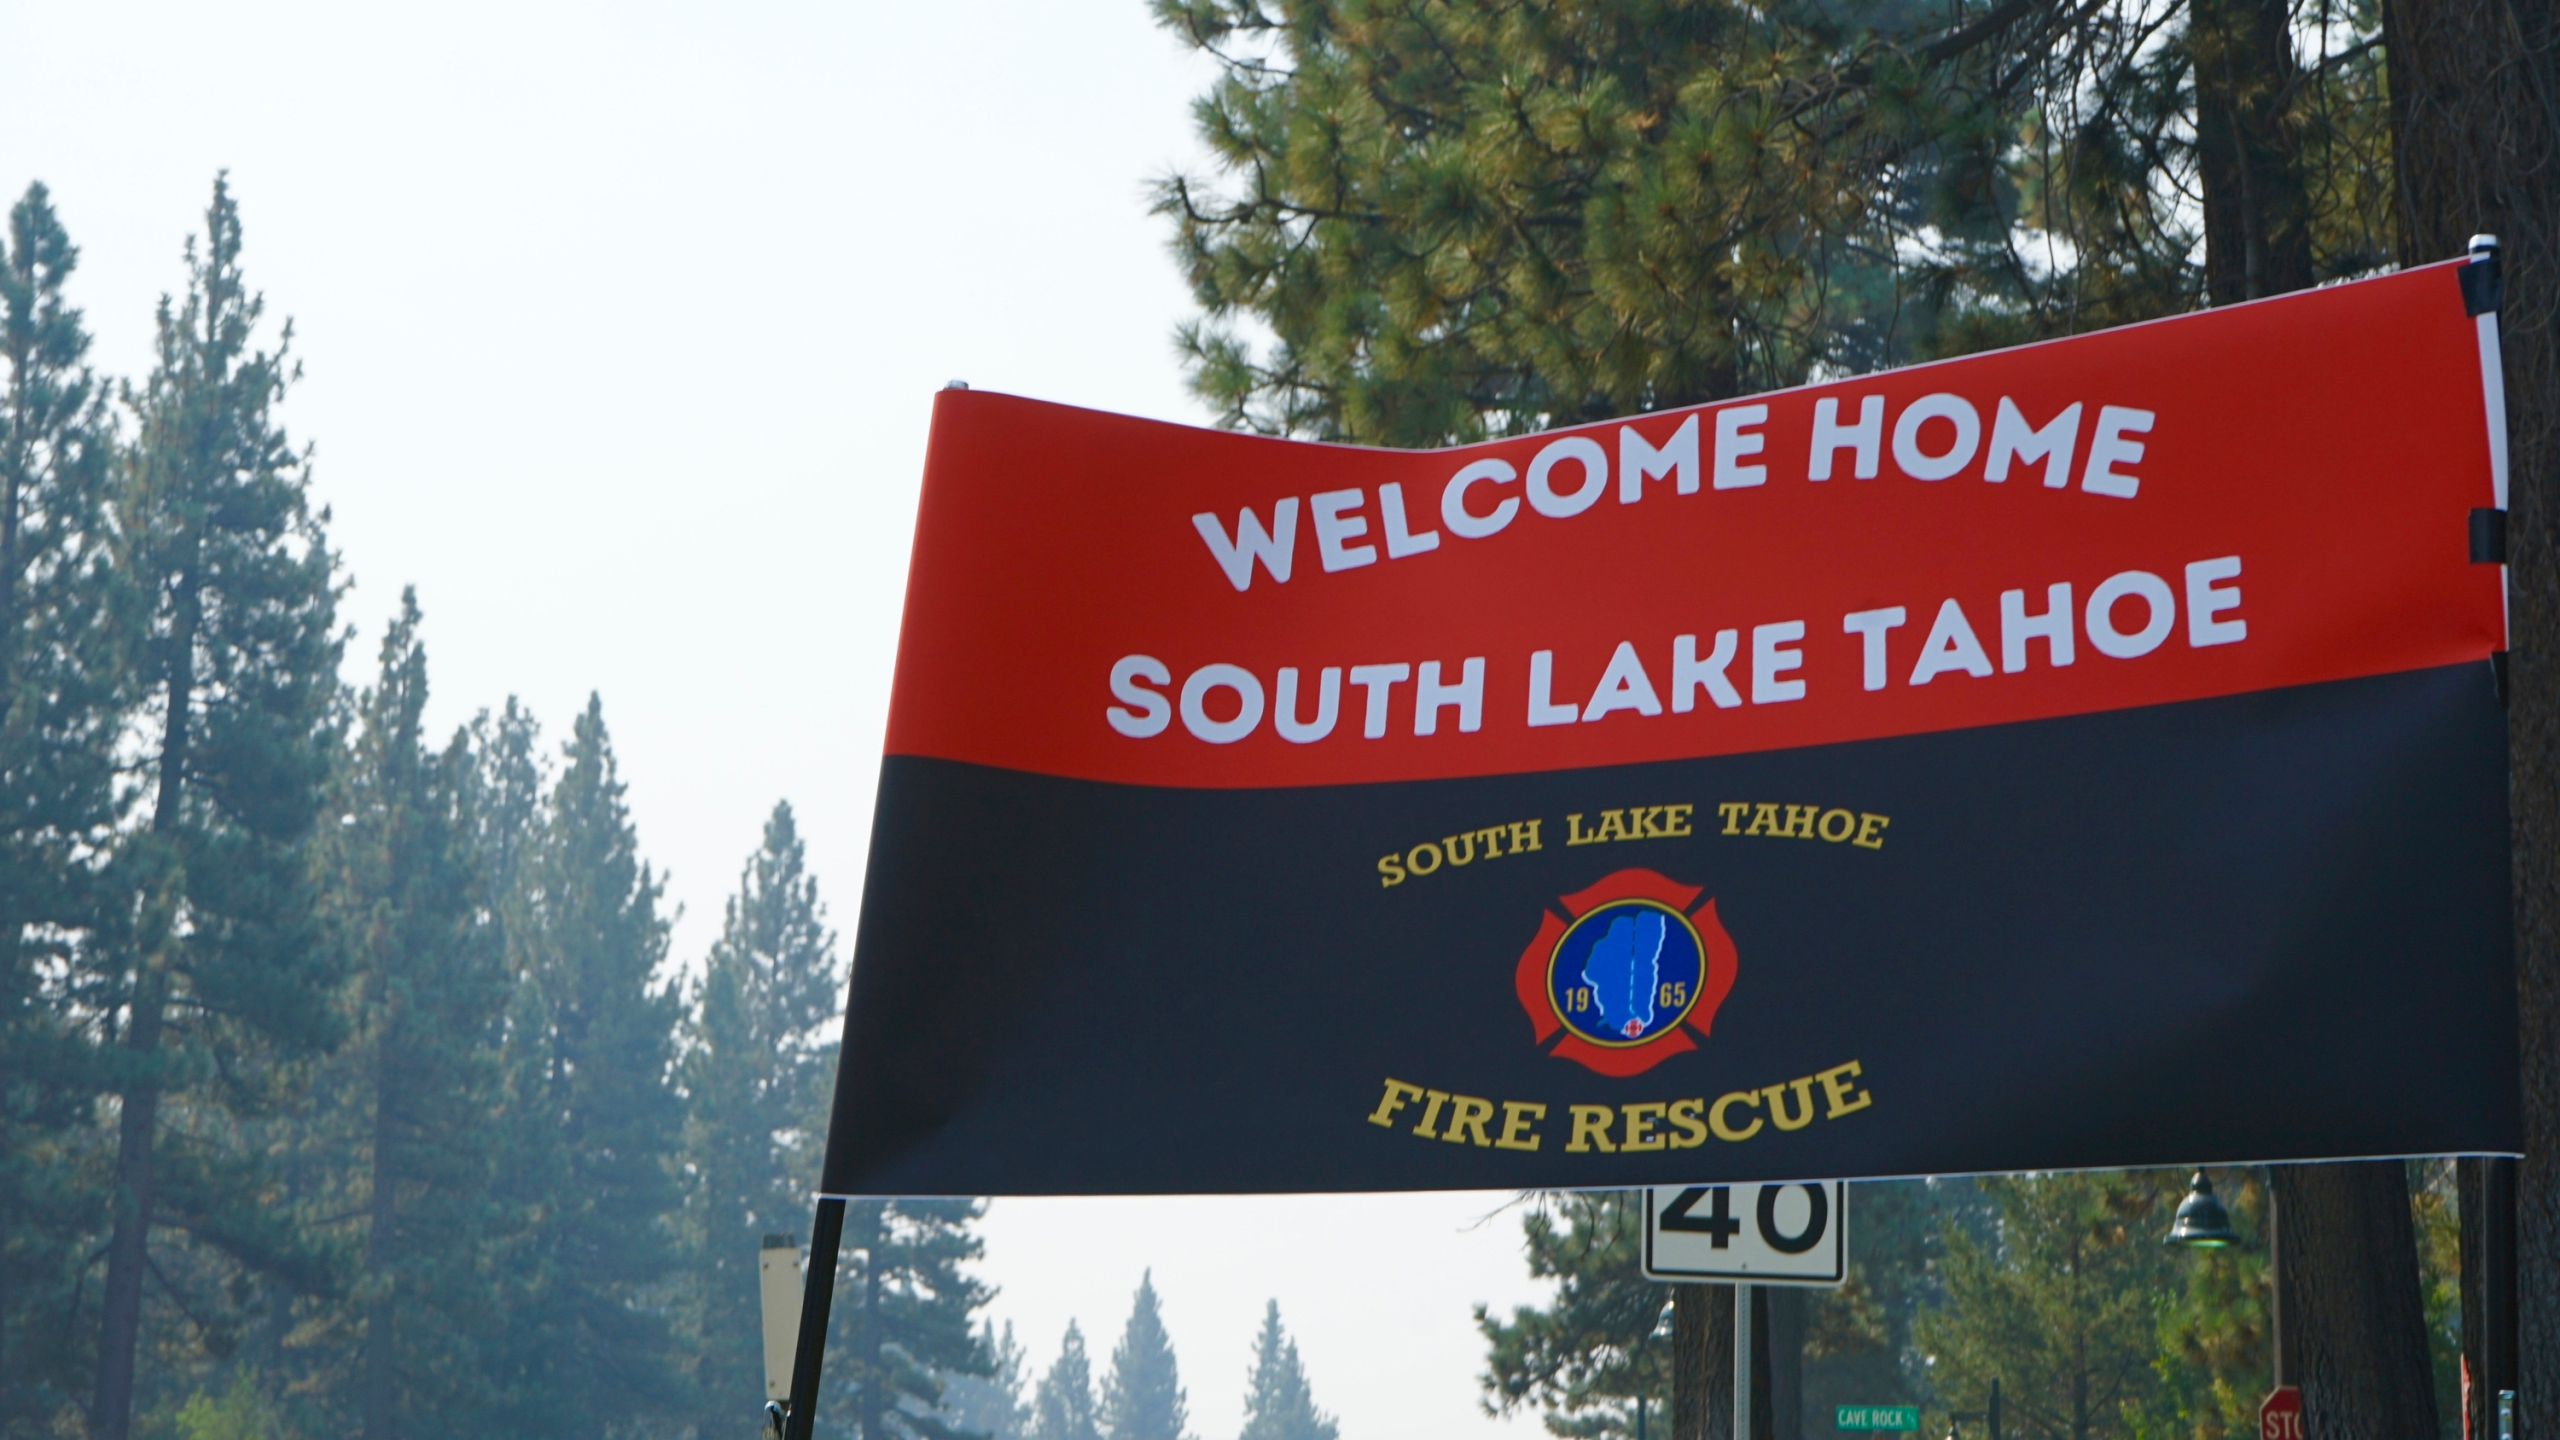 A sign outside a South Lake Tahoe Fire Station welcomes residents back to town after the lifting of the evacuation order Monday, Sept. 6, 2021. The resort town of some 22,000 was cleared last week due to the Caldor Fire. (AP Photo/Samuel Metz)